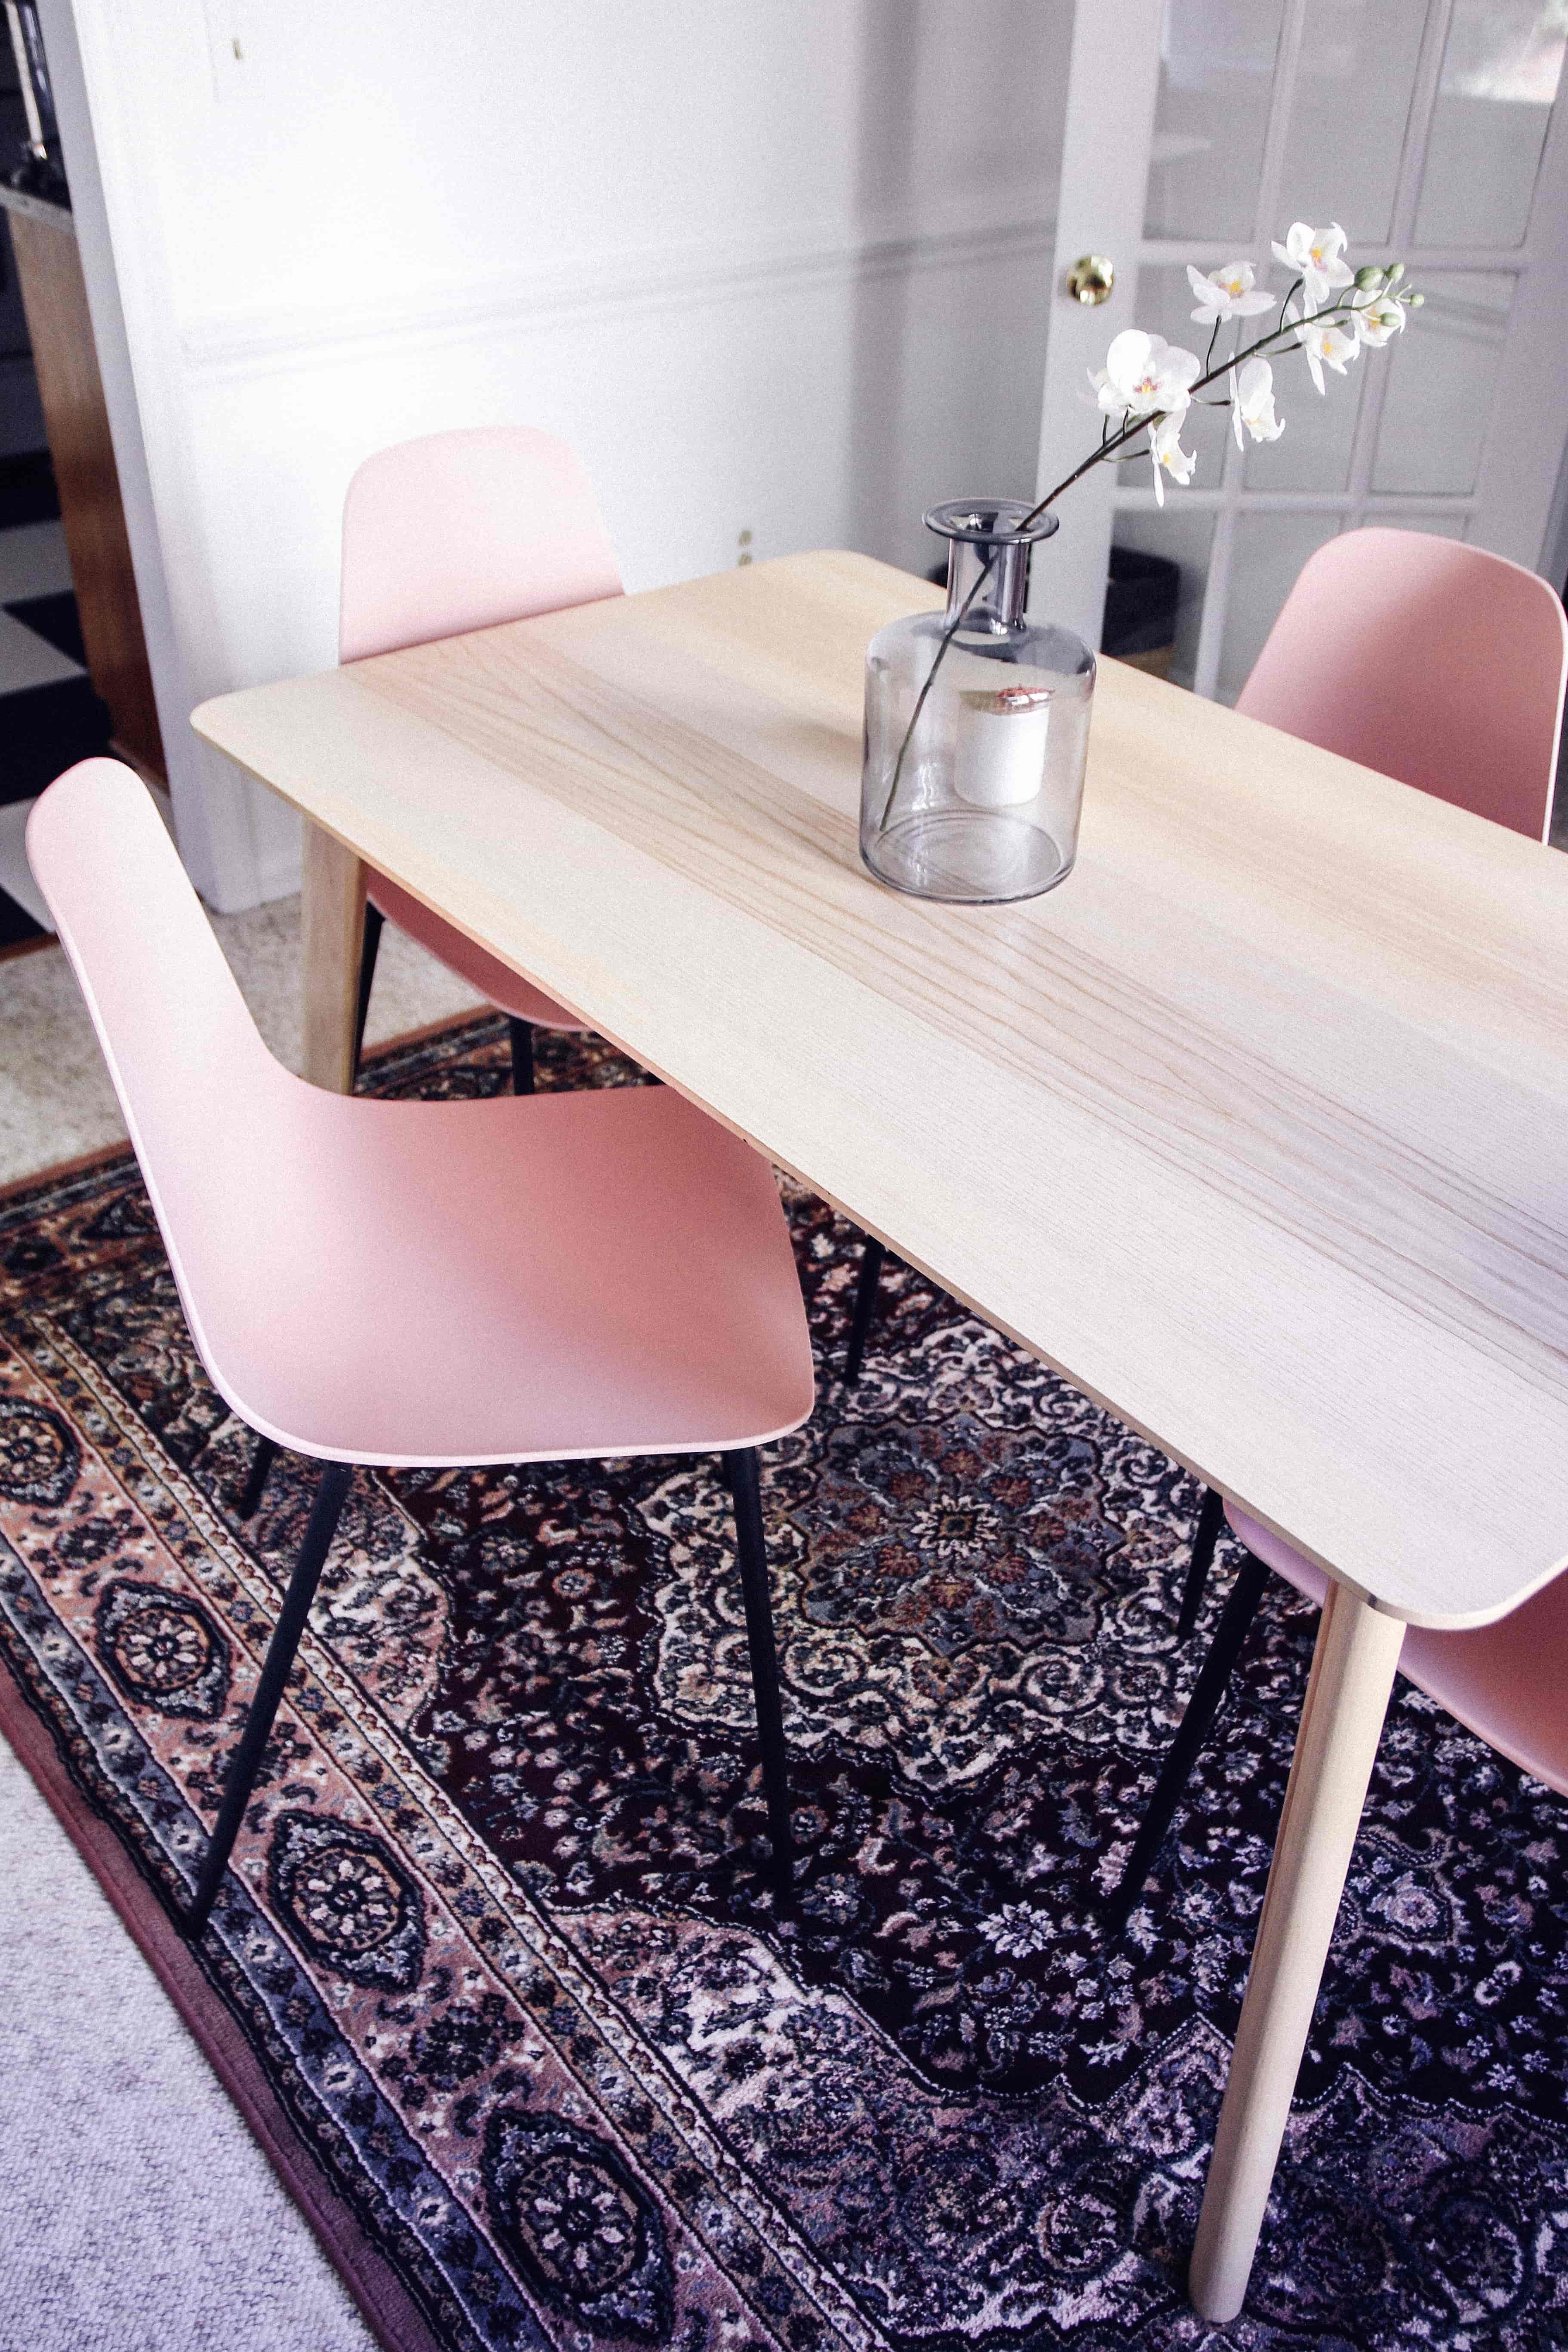 Cheer Up With These Pink Article Chairs (And A Gray Bench!)